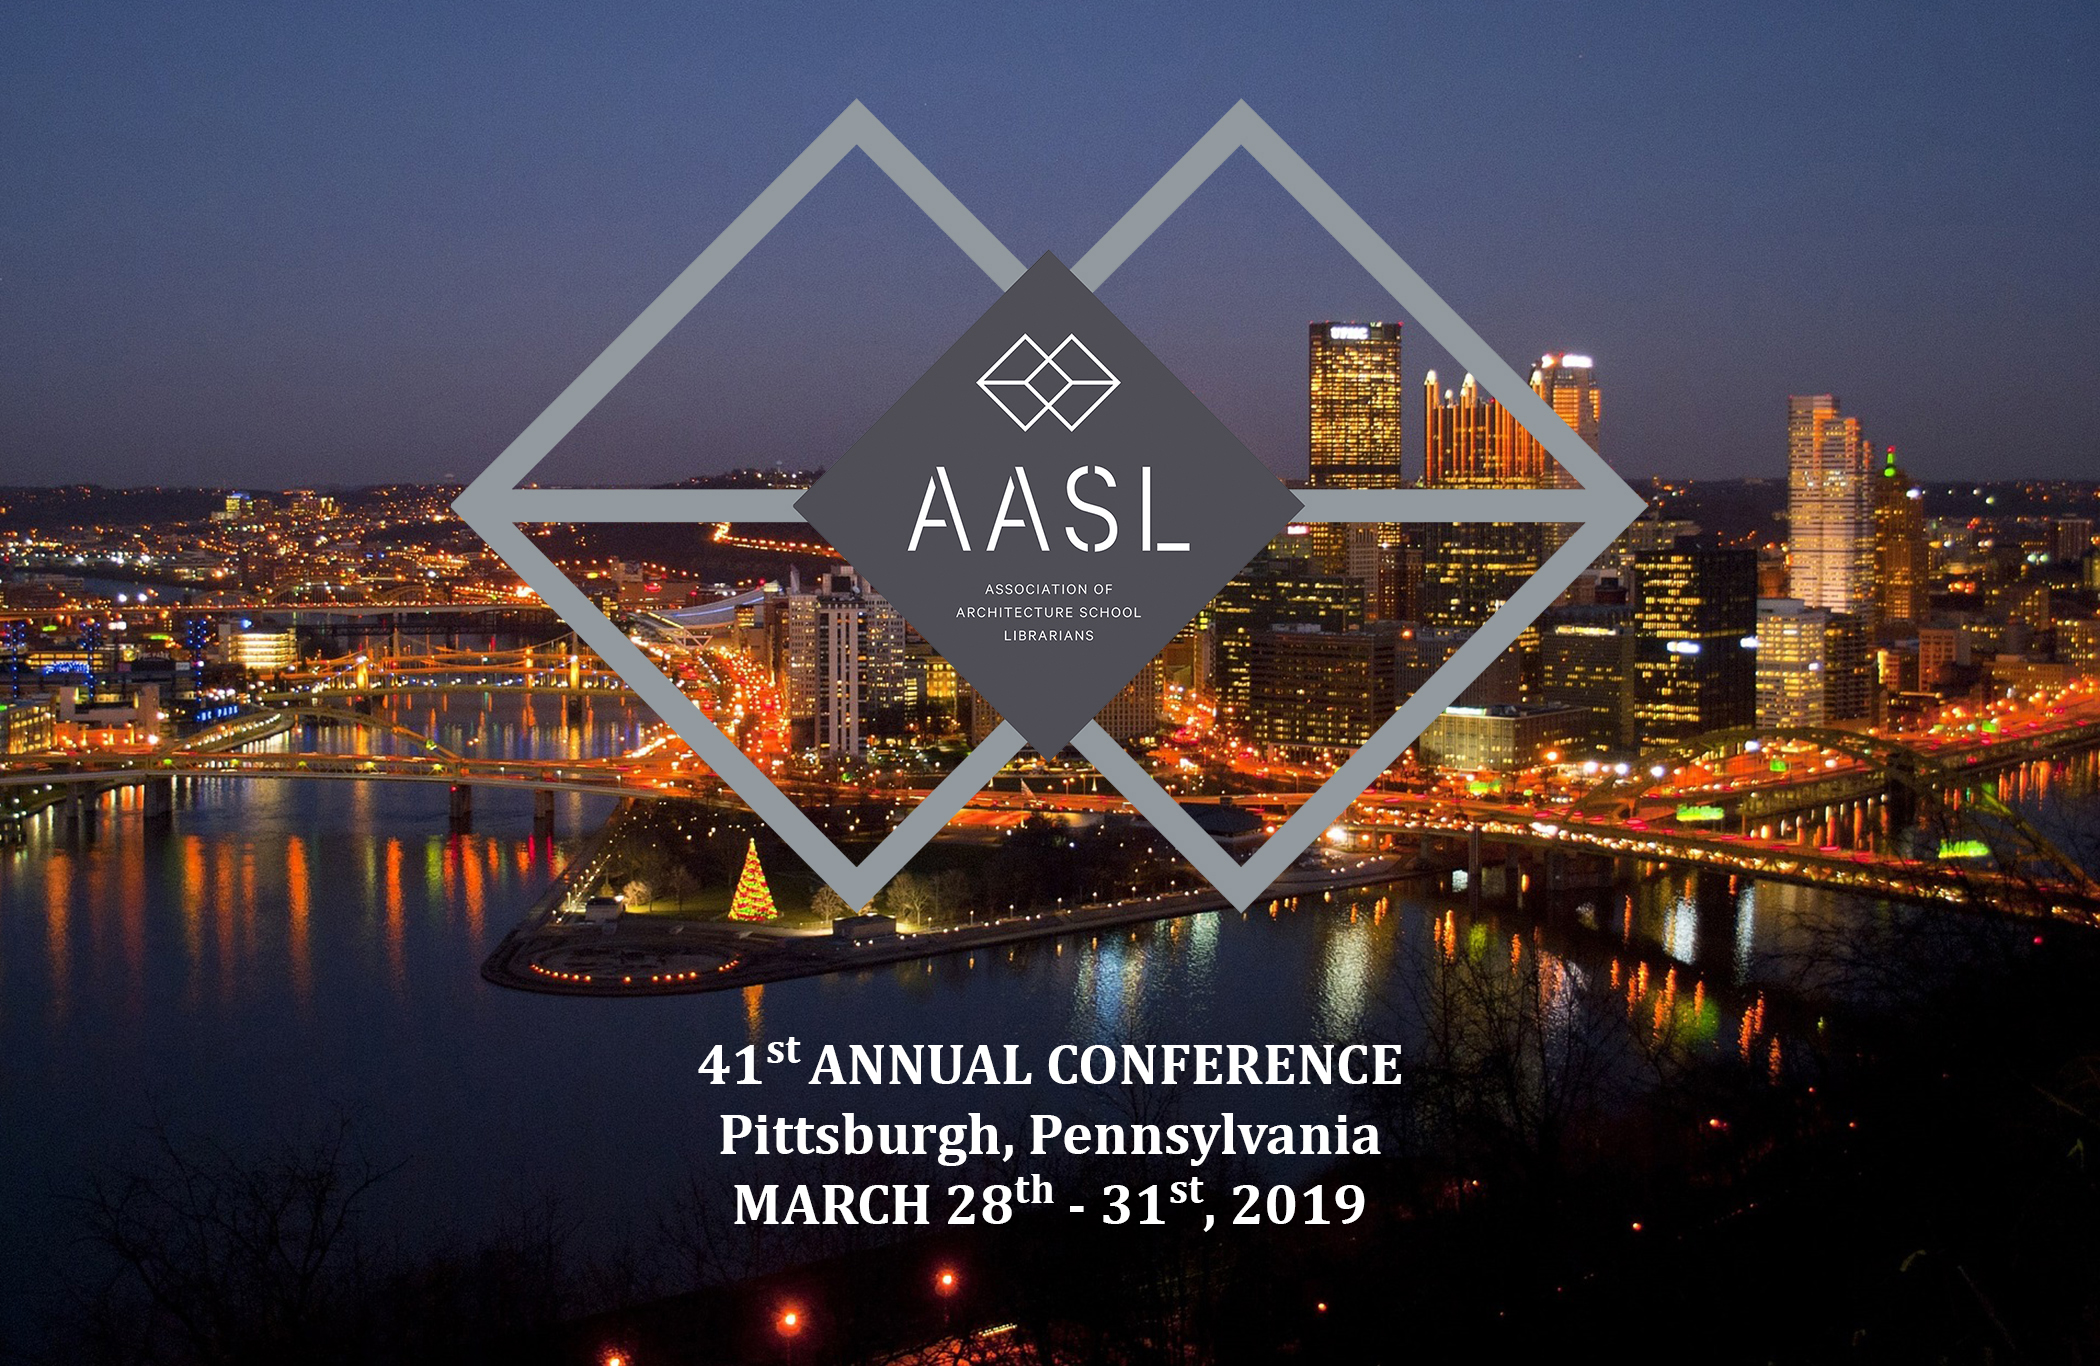 2019 AASL Pittsburgh Conference